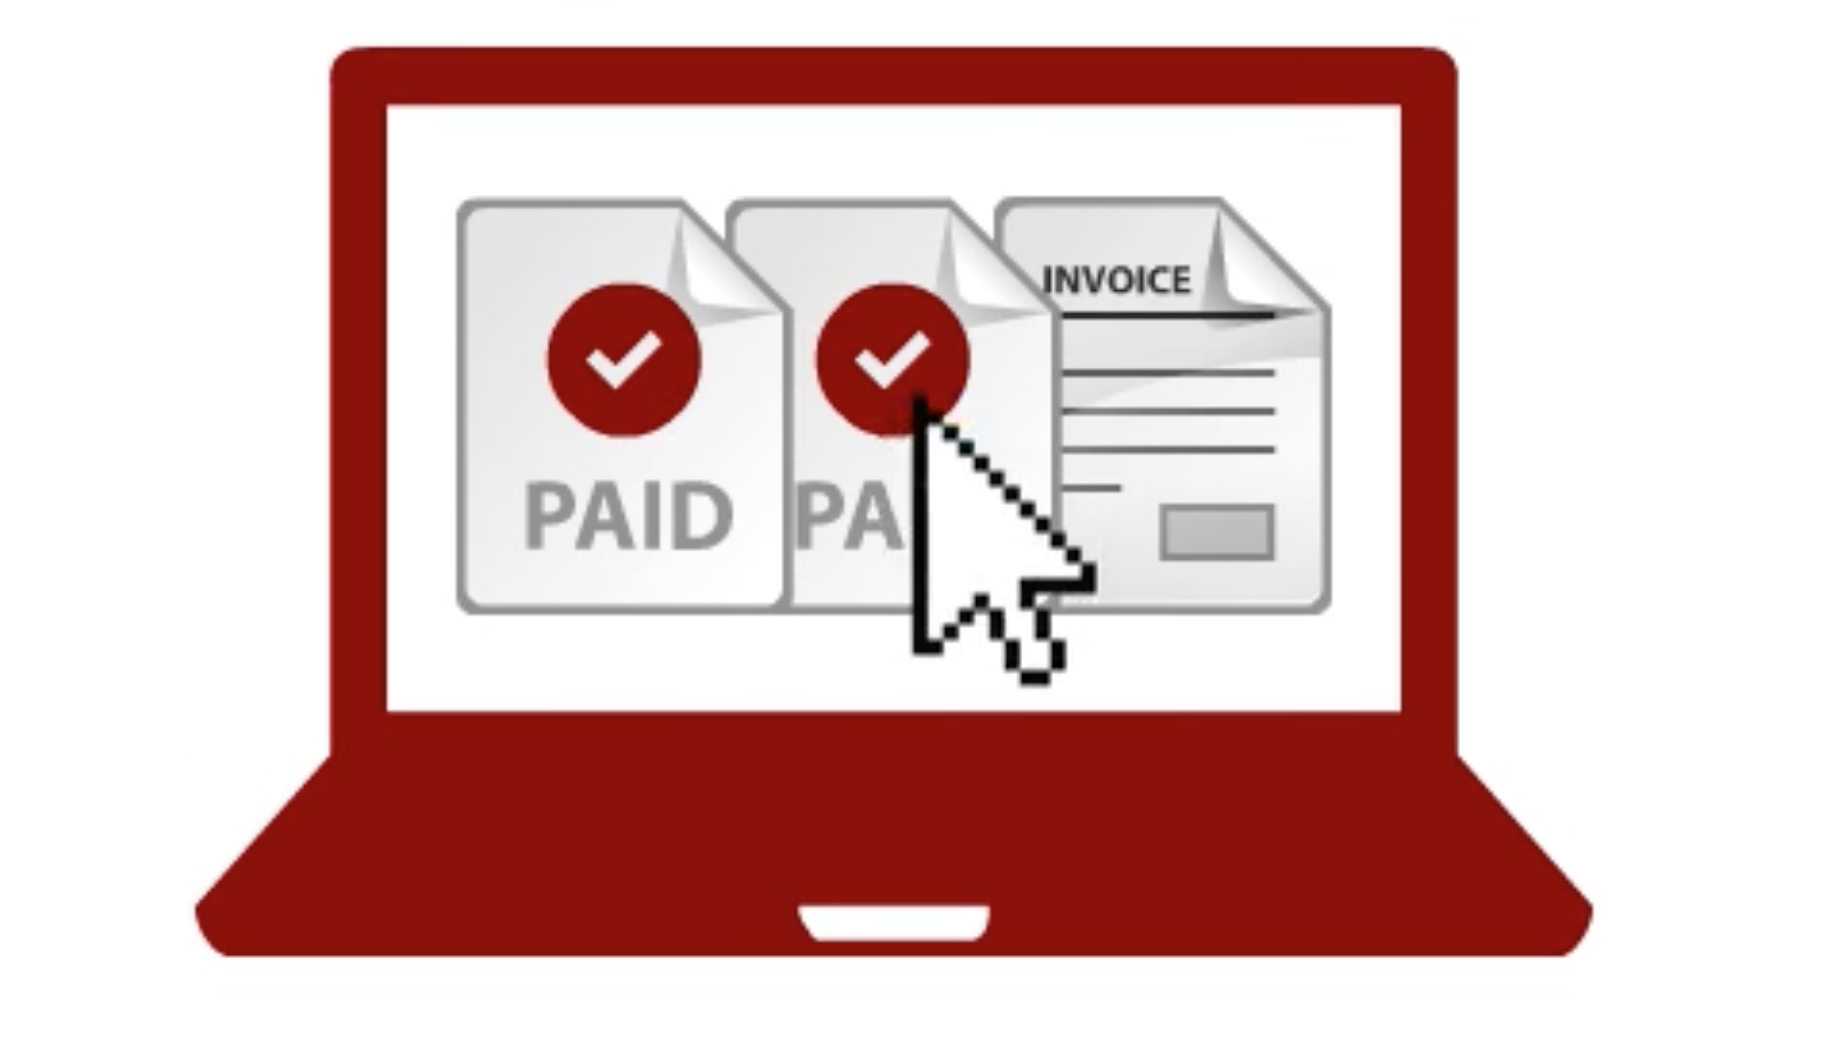 laptop with paid invoices icon